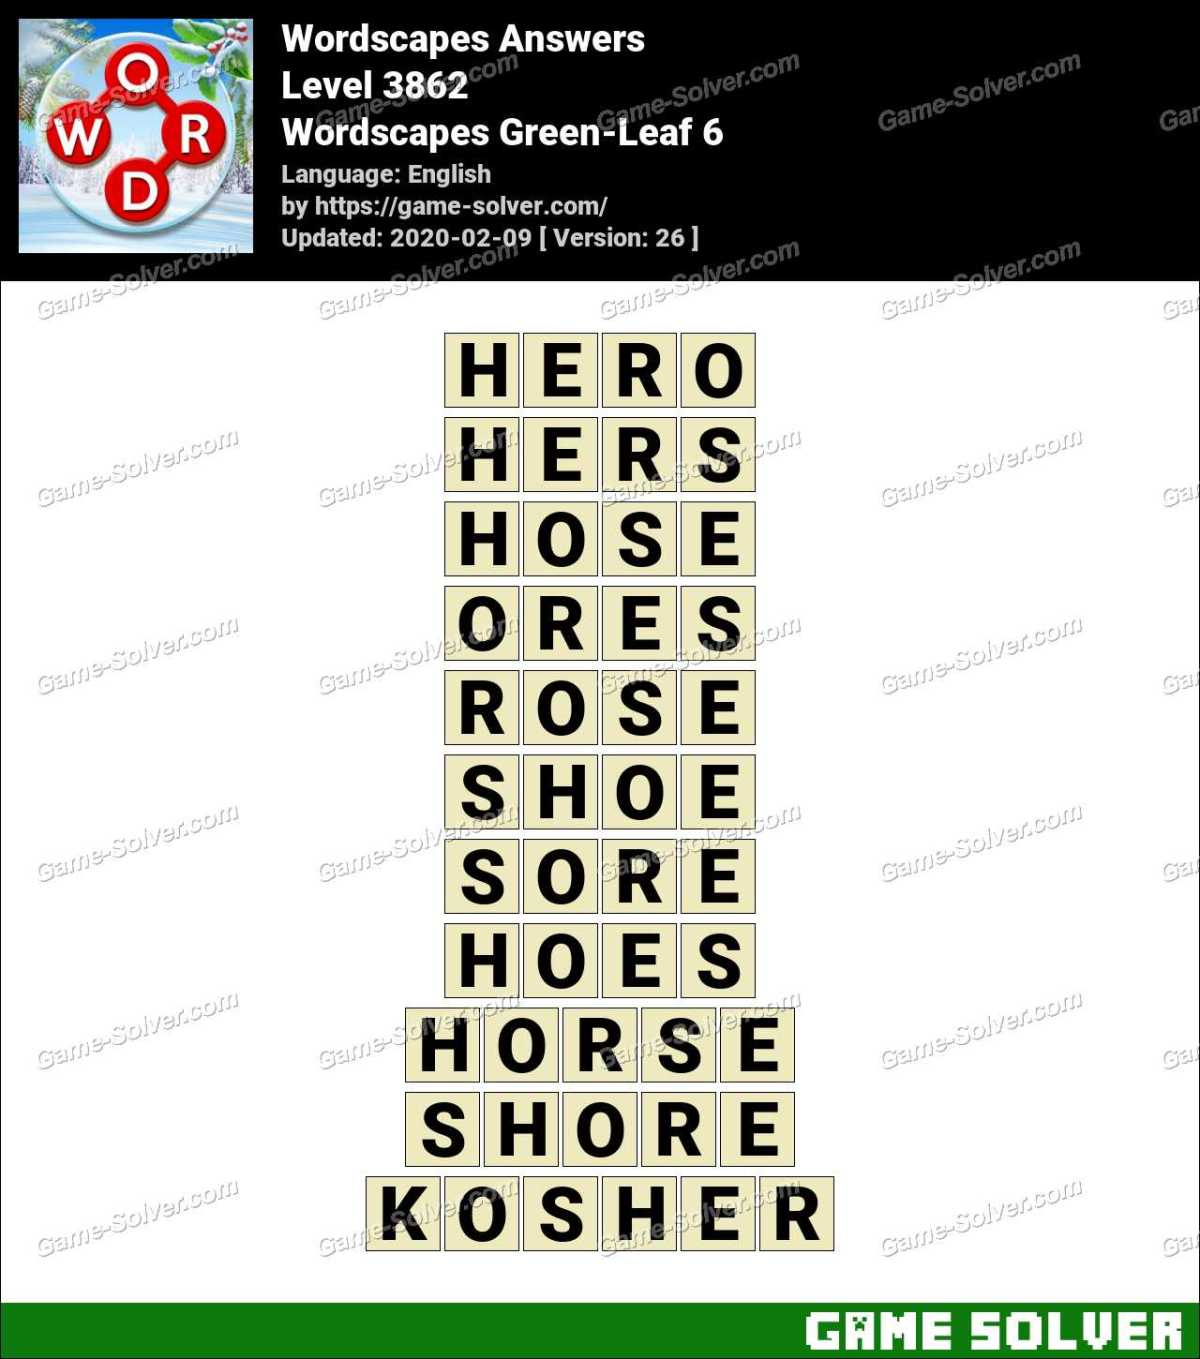 Wordscapes Green-Leaf 6 Answers